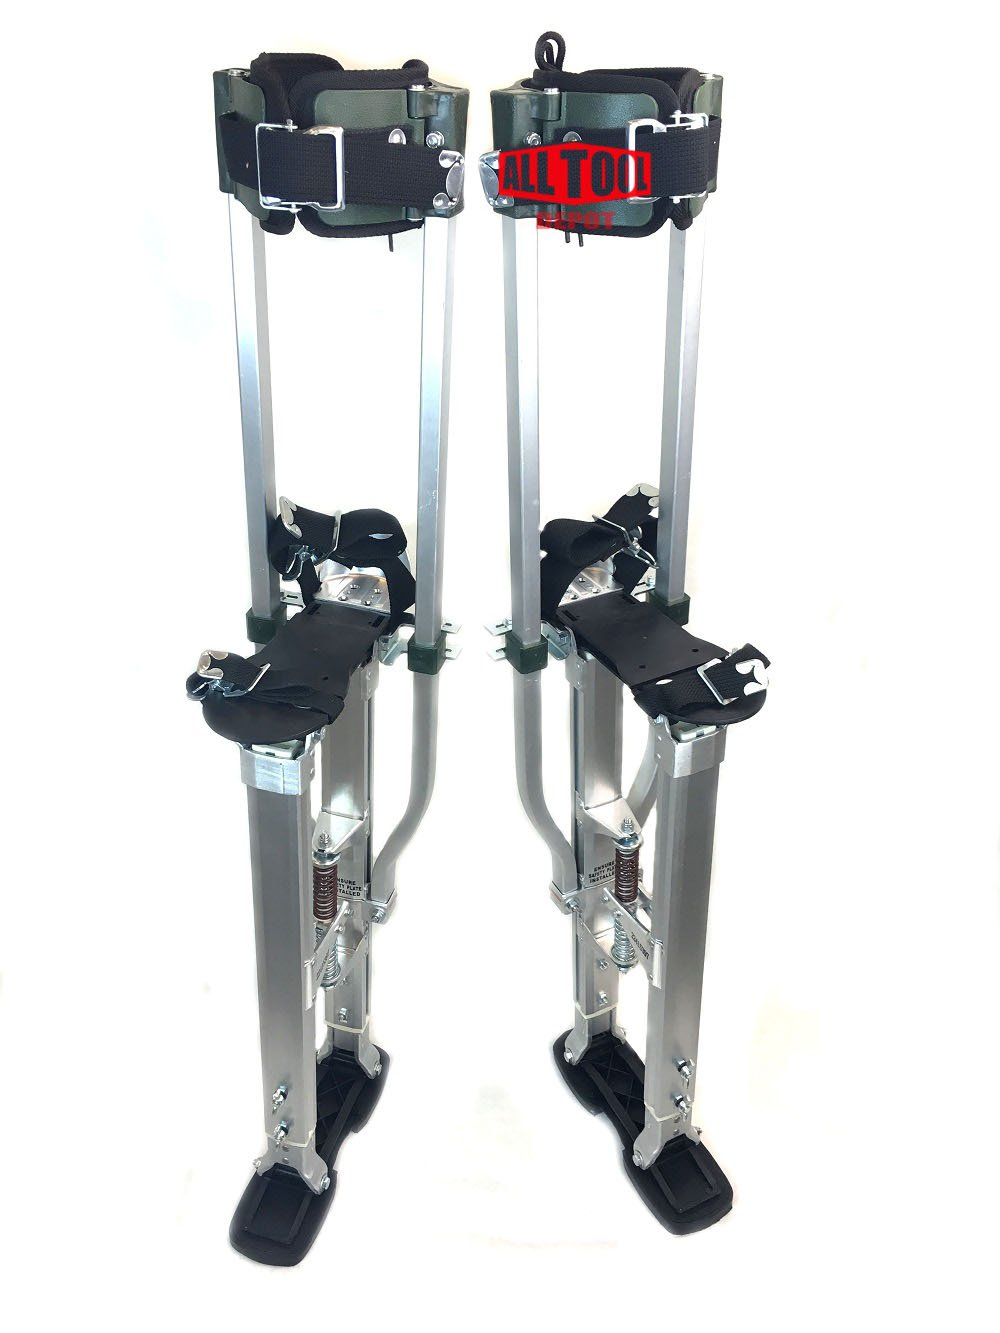 SurPro S2 Interlok Dual Legs Support Aluminum Drywall Stilts 18-23 in. (SUR-S2-1830AP)